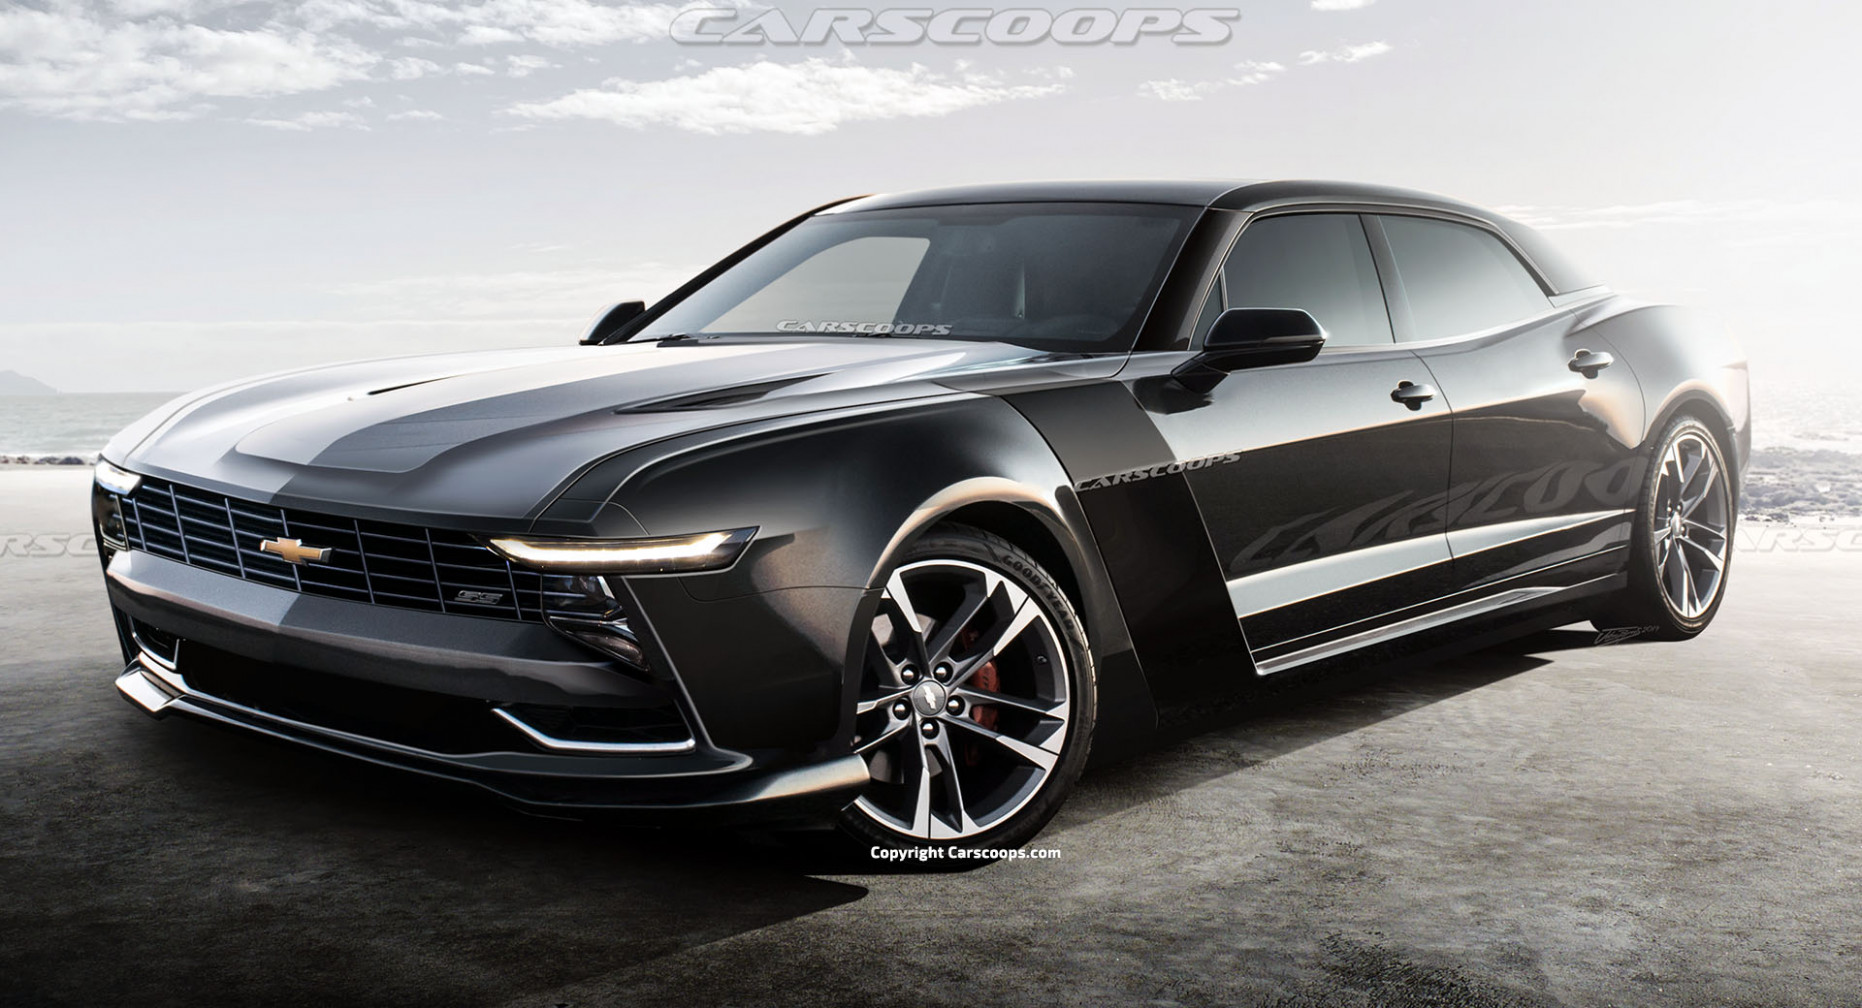 Review 2022 Chevy Impala SS